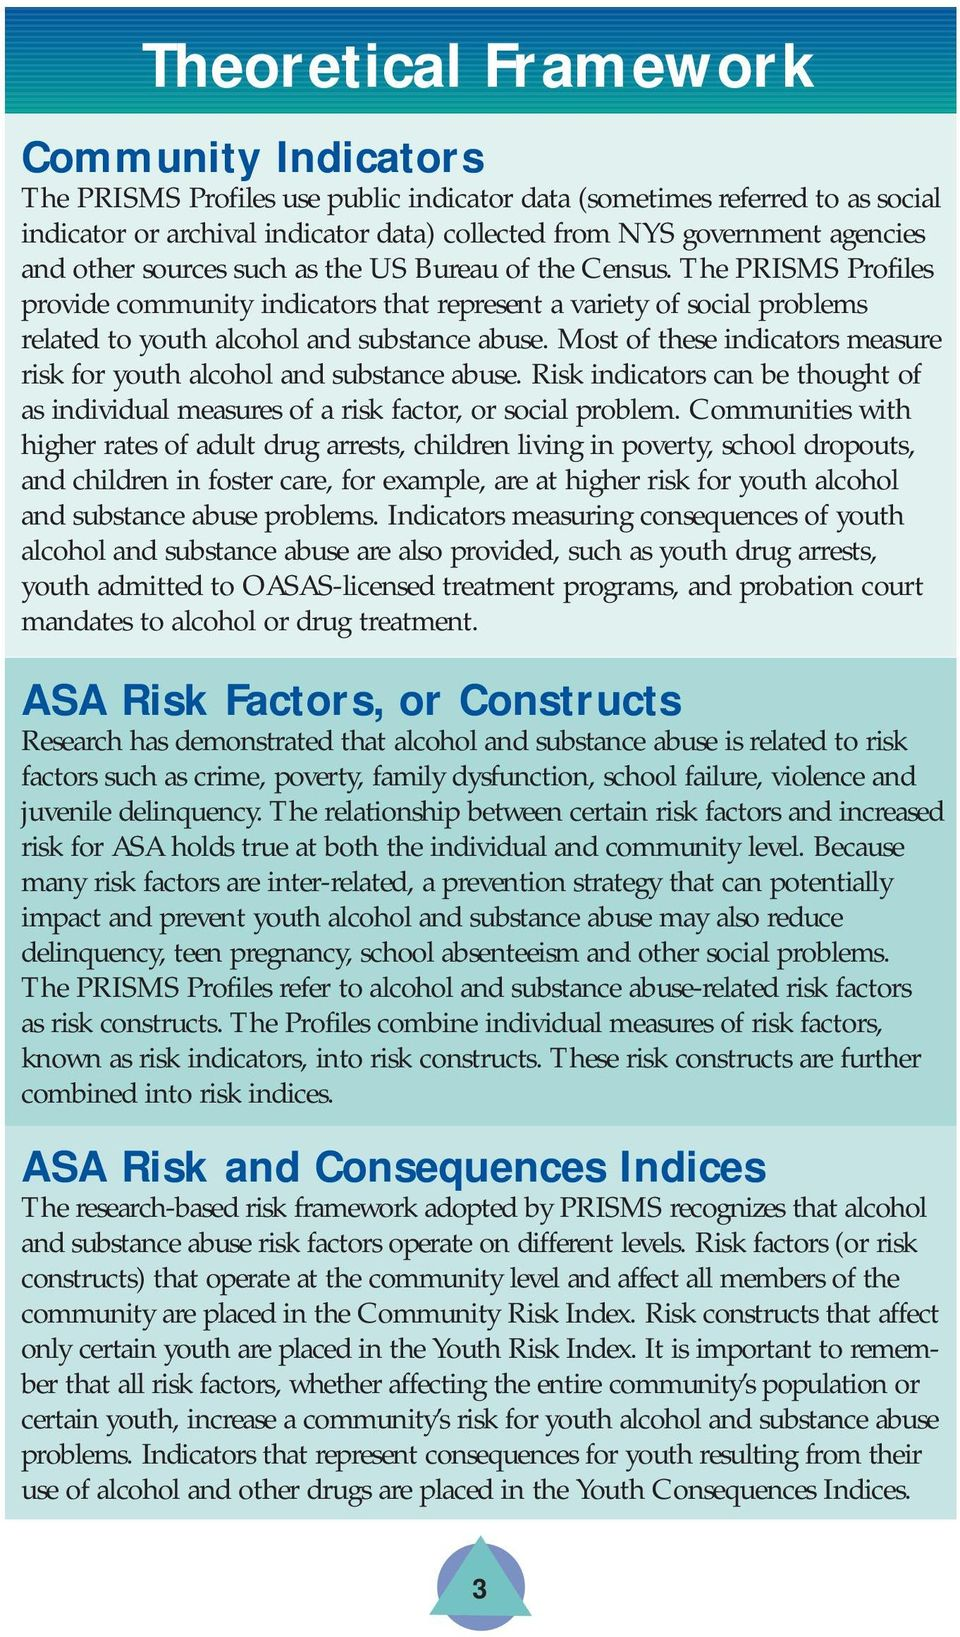 Most of these indicators measure risk for youth alcohol and substance abuse. Risk indicators can be thought of as individual measures of a risk factor, or social problem.